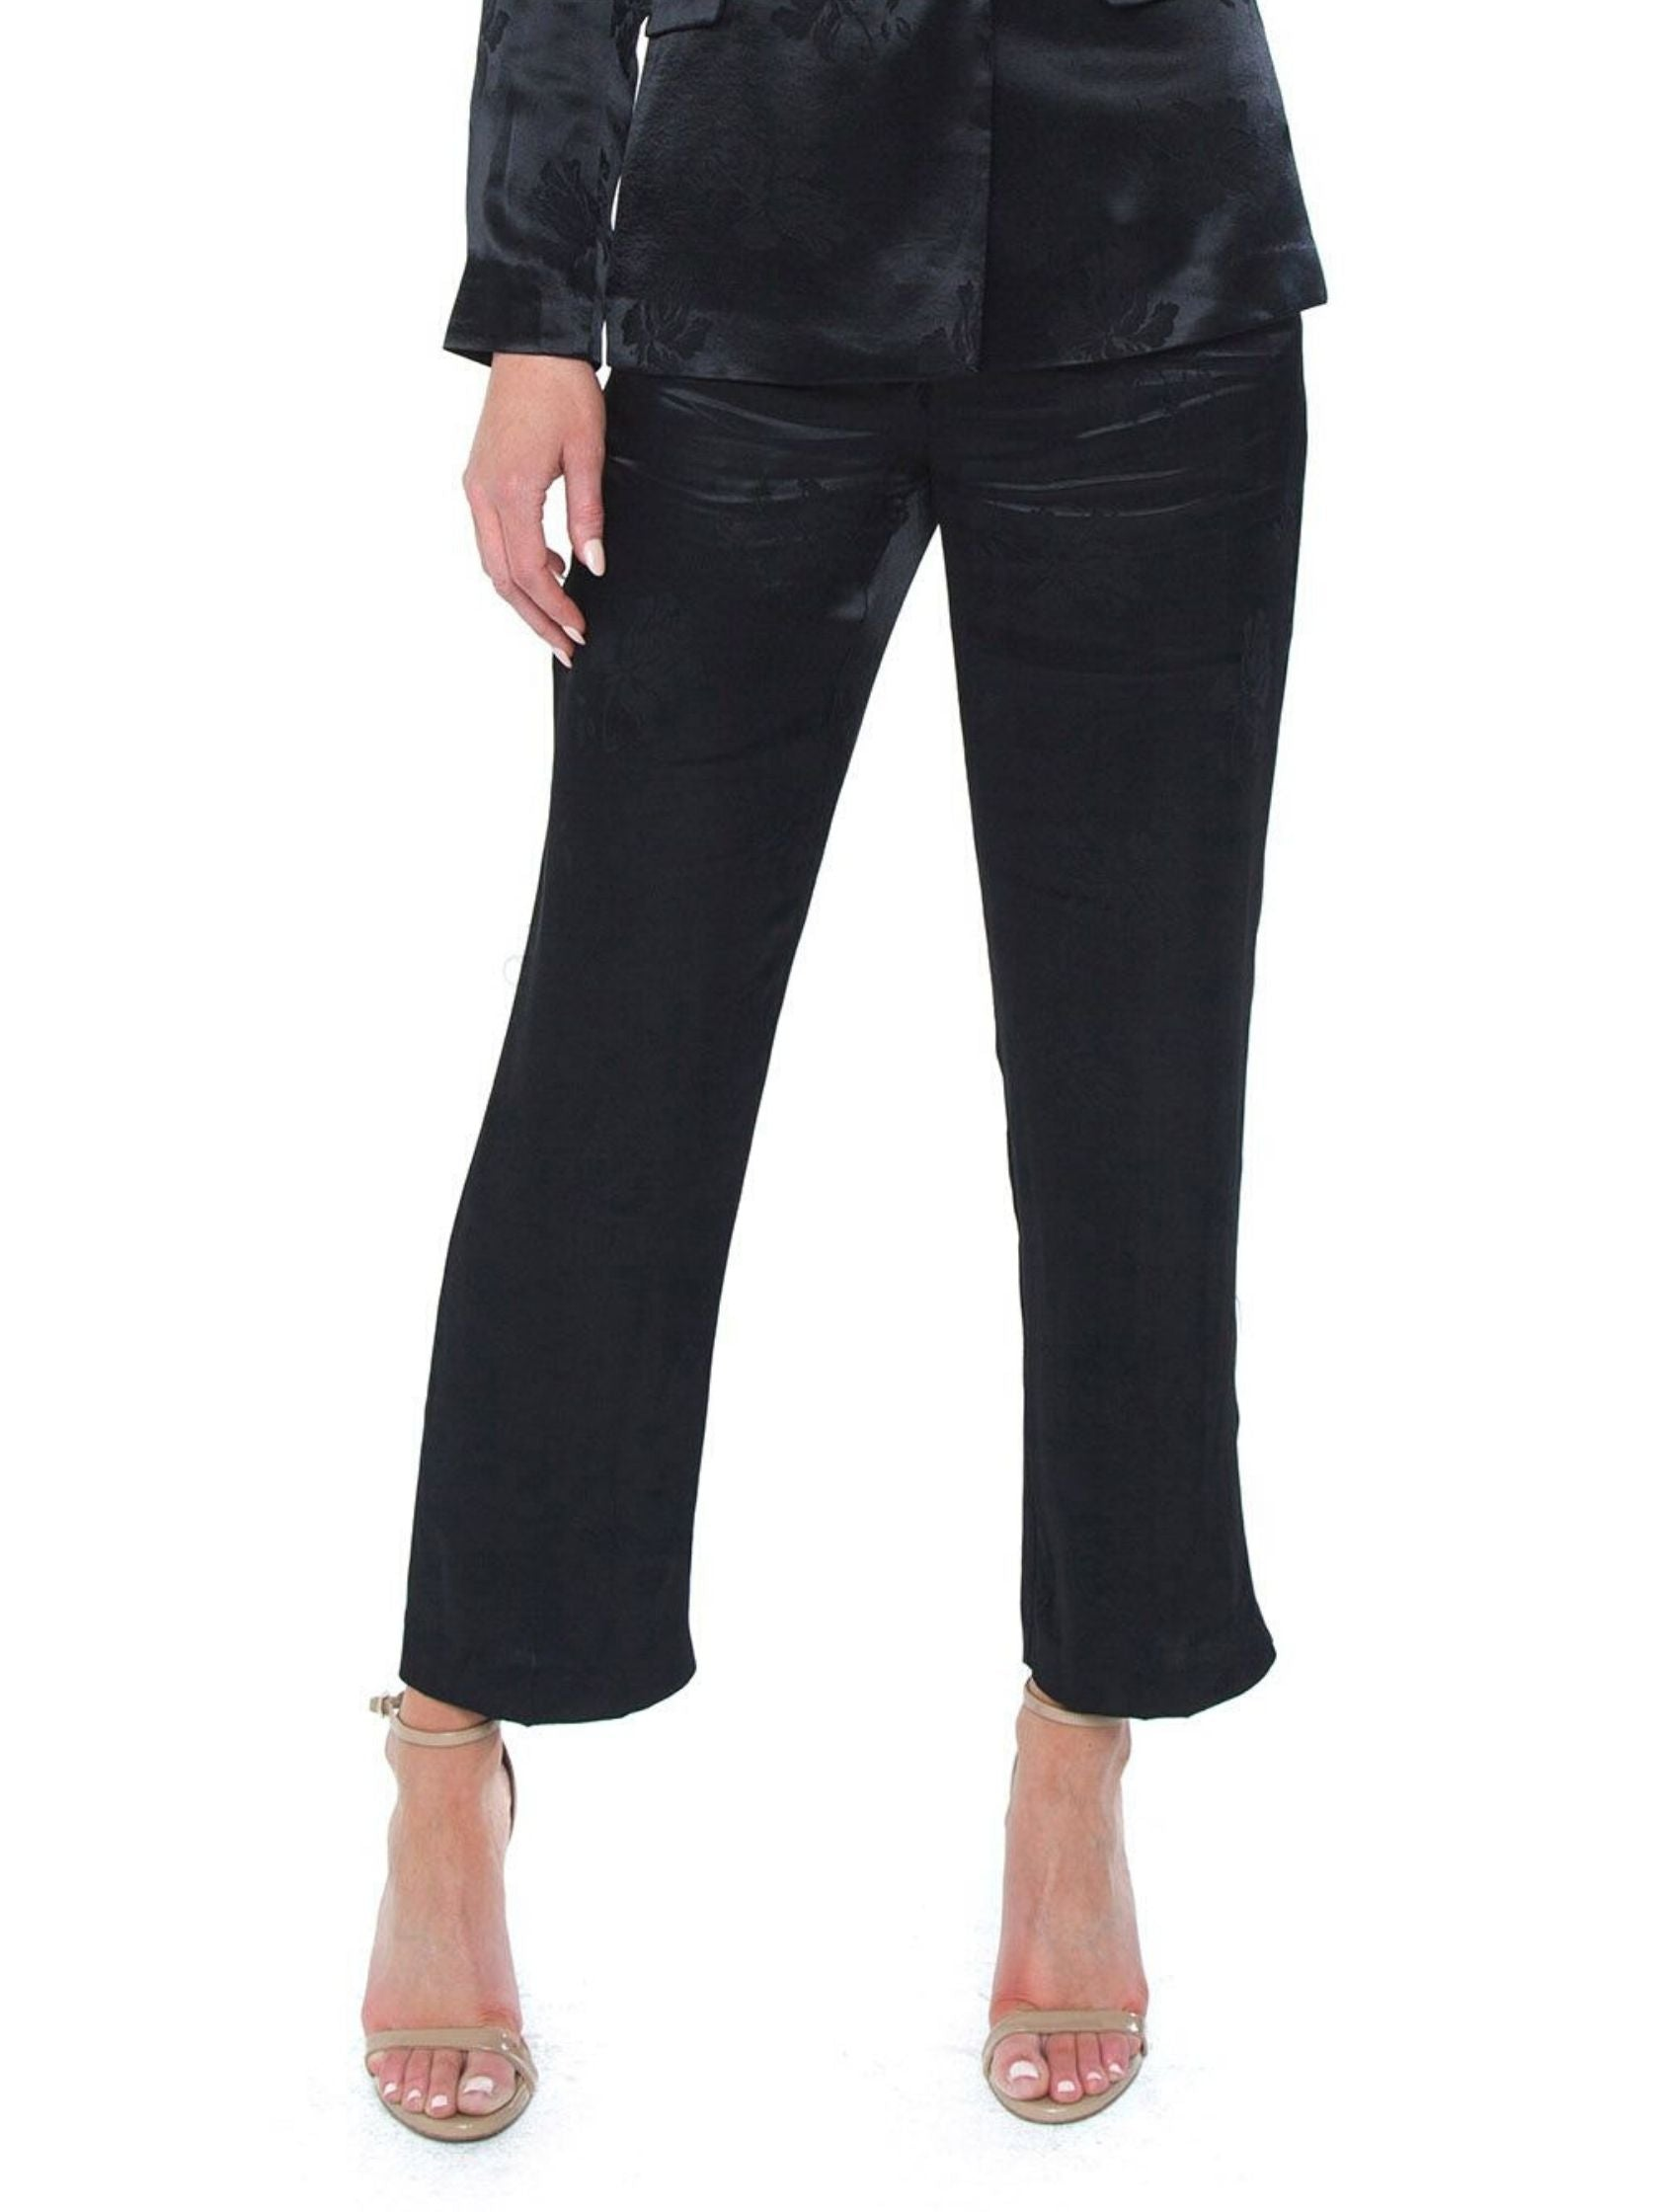 Women wearing a pants rental from 1.STATE called Floral Jacquard Wide Leg Pant